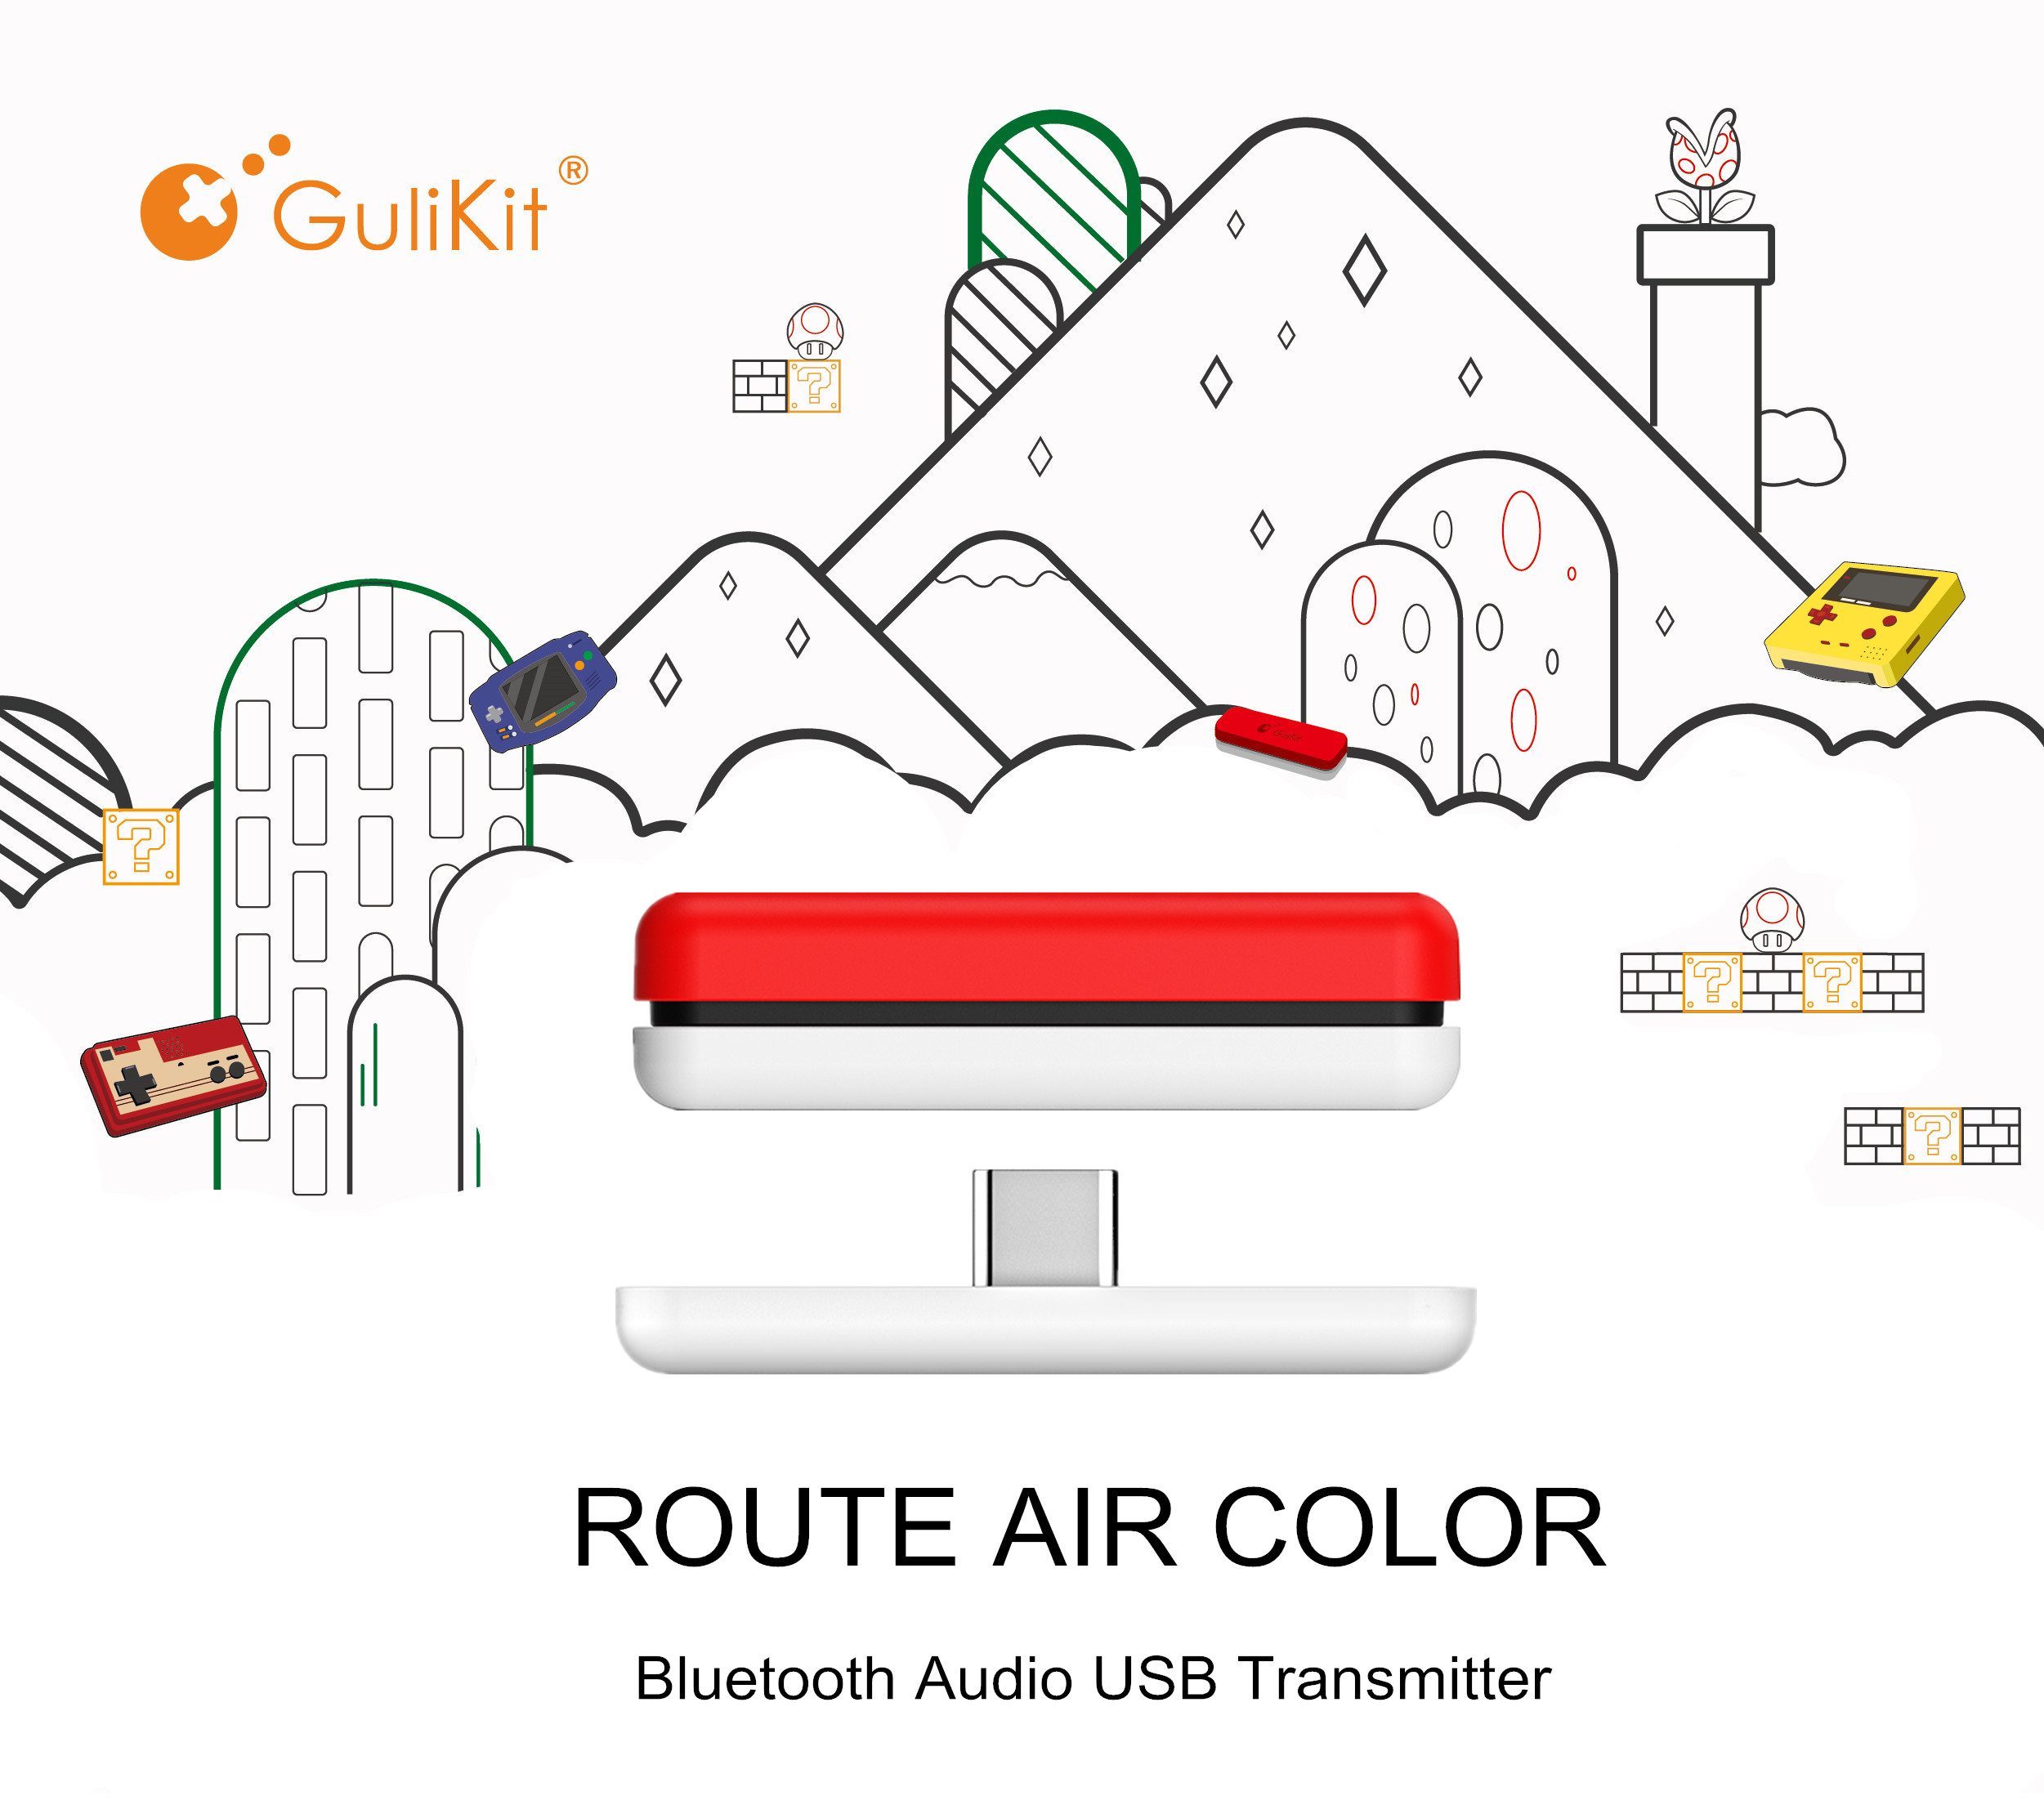 GuliKit NS07 Route Air Color Wireless Audio Transmitter Bluetooth USB C Transceiver Adapter For Nintendo Switch/Switch Lite/PS4 title=